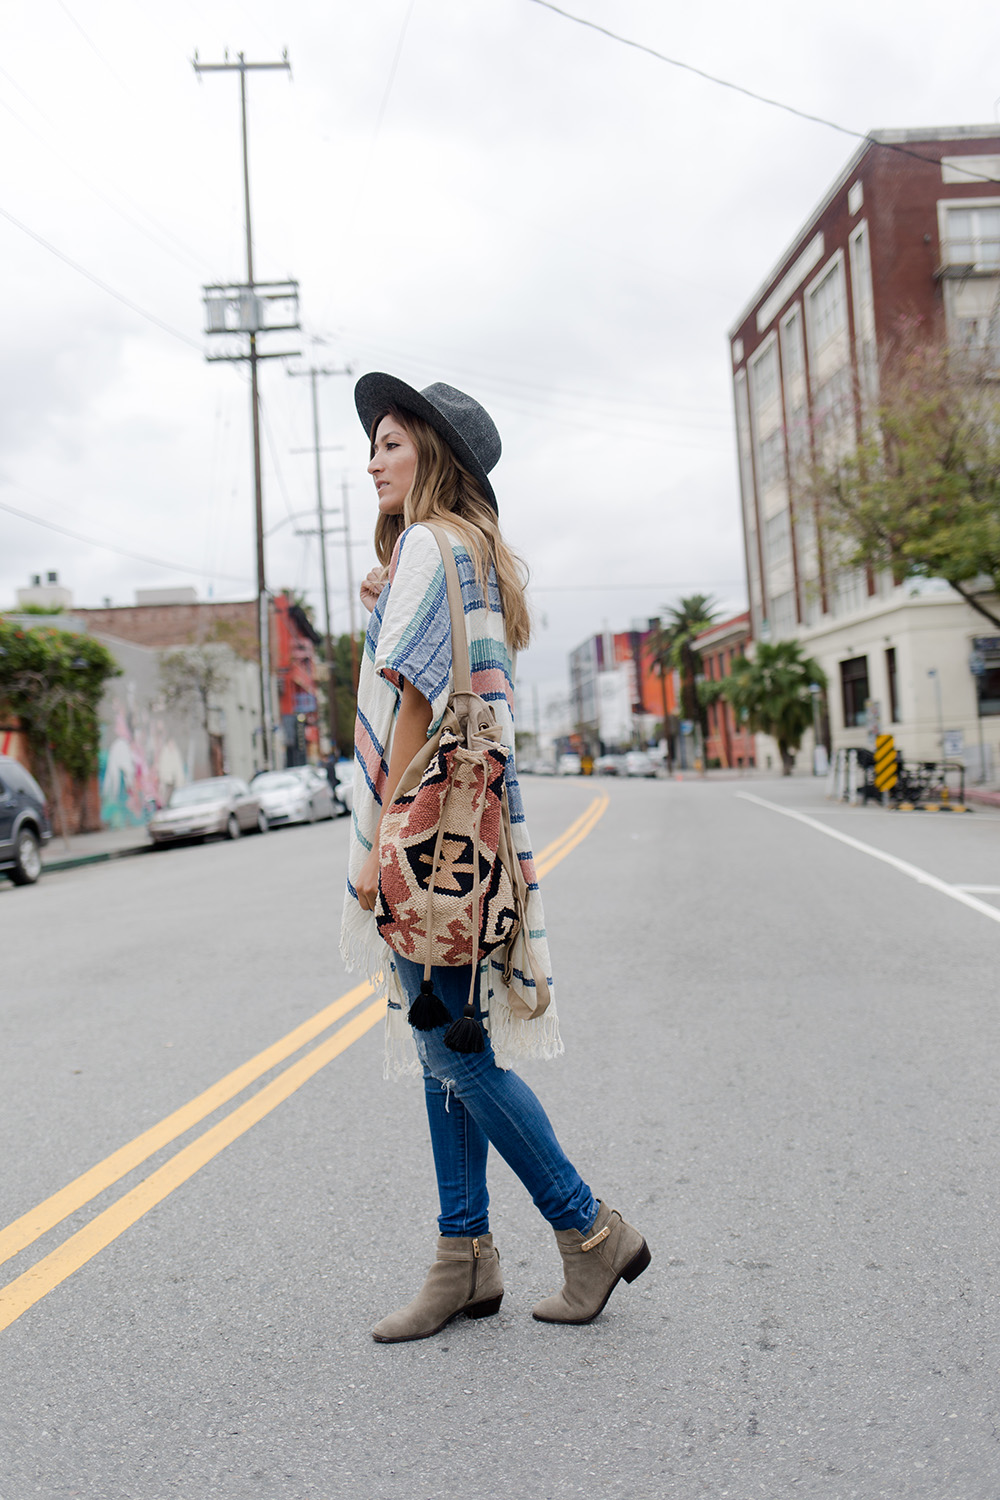 How to Style a Boho Shawl Three Ways, World Market, one item three ways, melrodstyle, outfit inspiration, outfit, ootd, inspiration, look of the day, look, style, fashion, blogger style, street style, boho, la blogger,